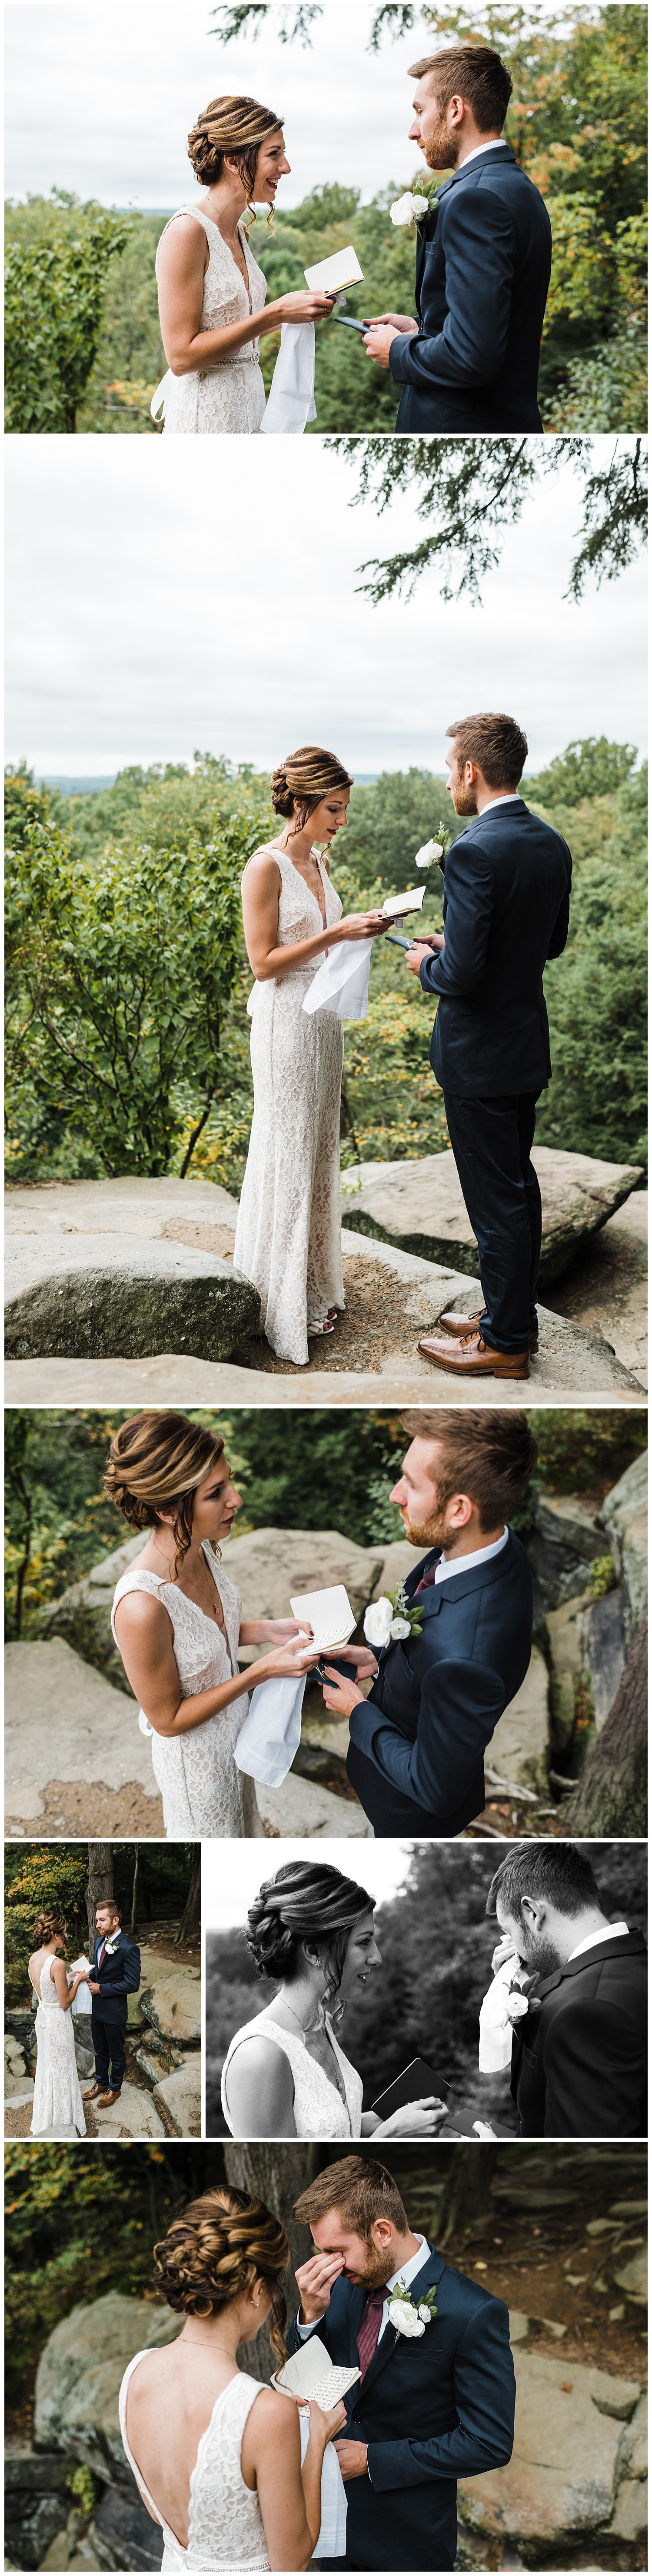 Easterday Creative | Adventurous wedding photographer and storyteller | Cuyahoga Valley National Park Elopement | Based out of SC + NC